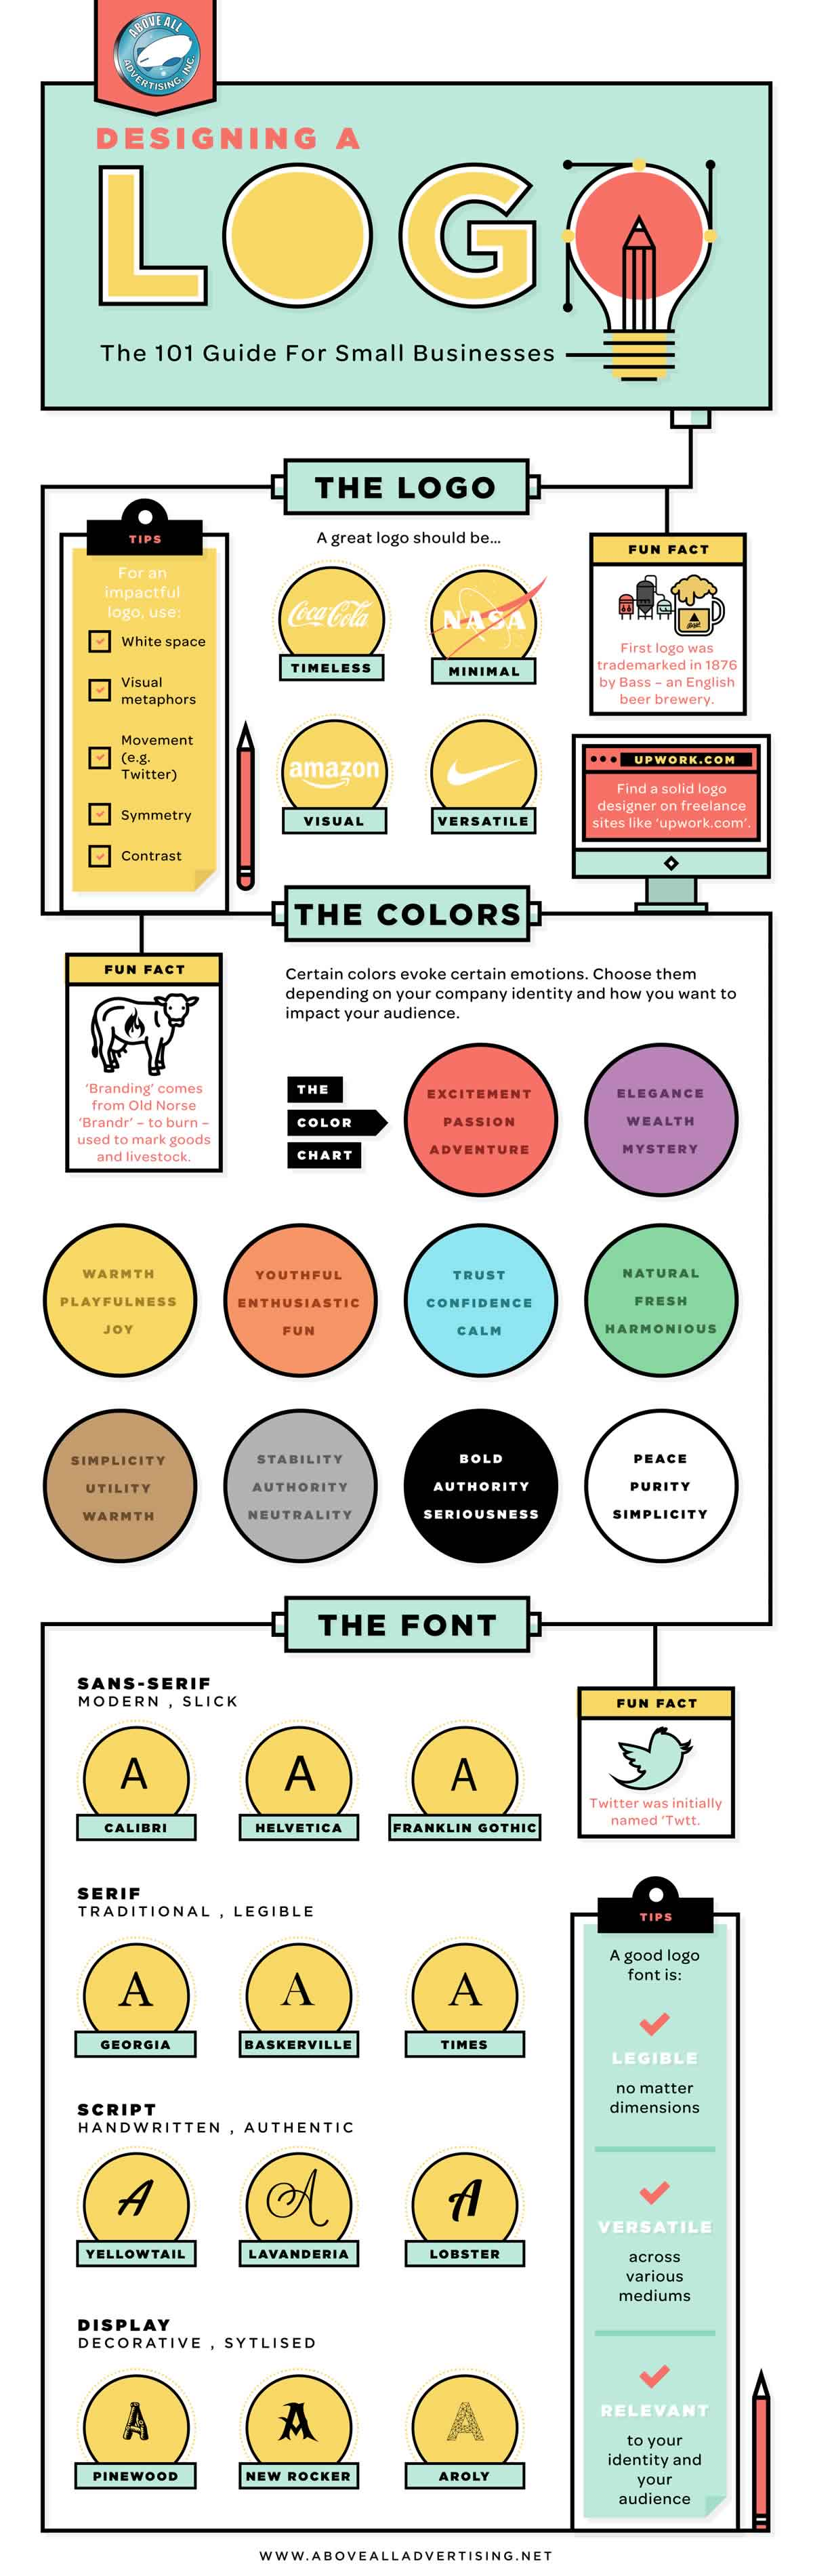 Designing a Logo: The 101 Guide For Small Businesses